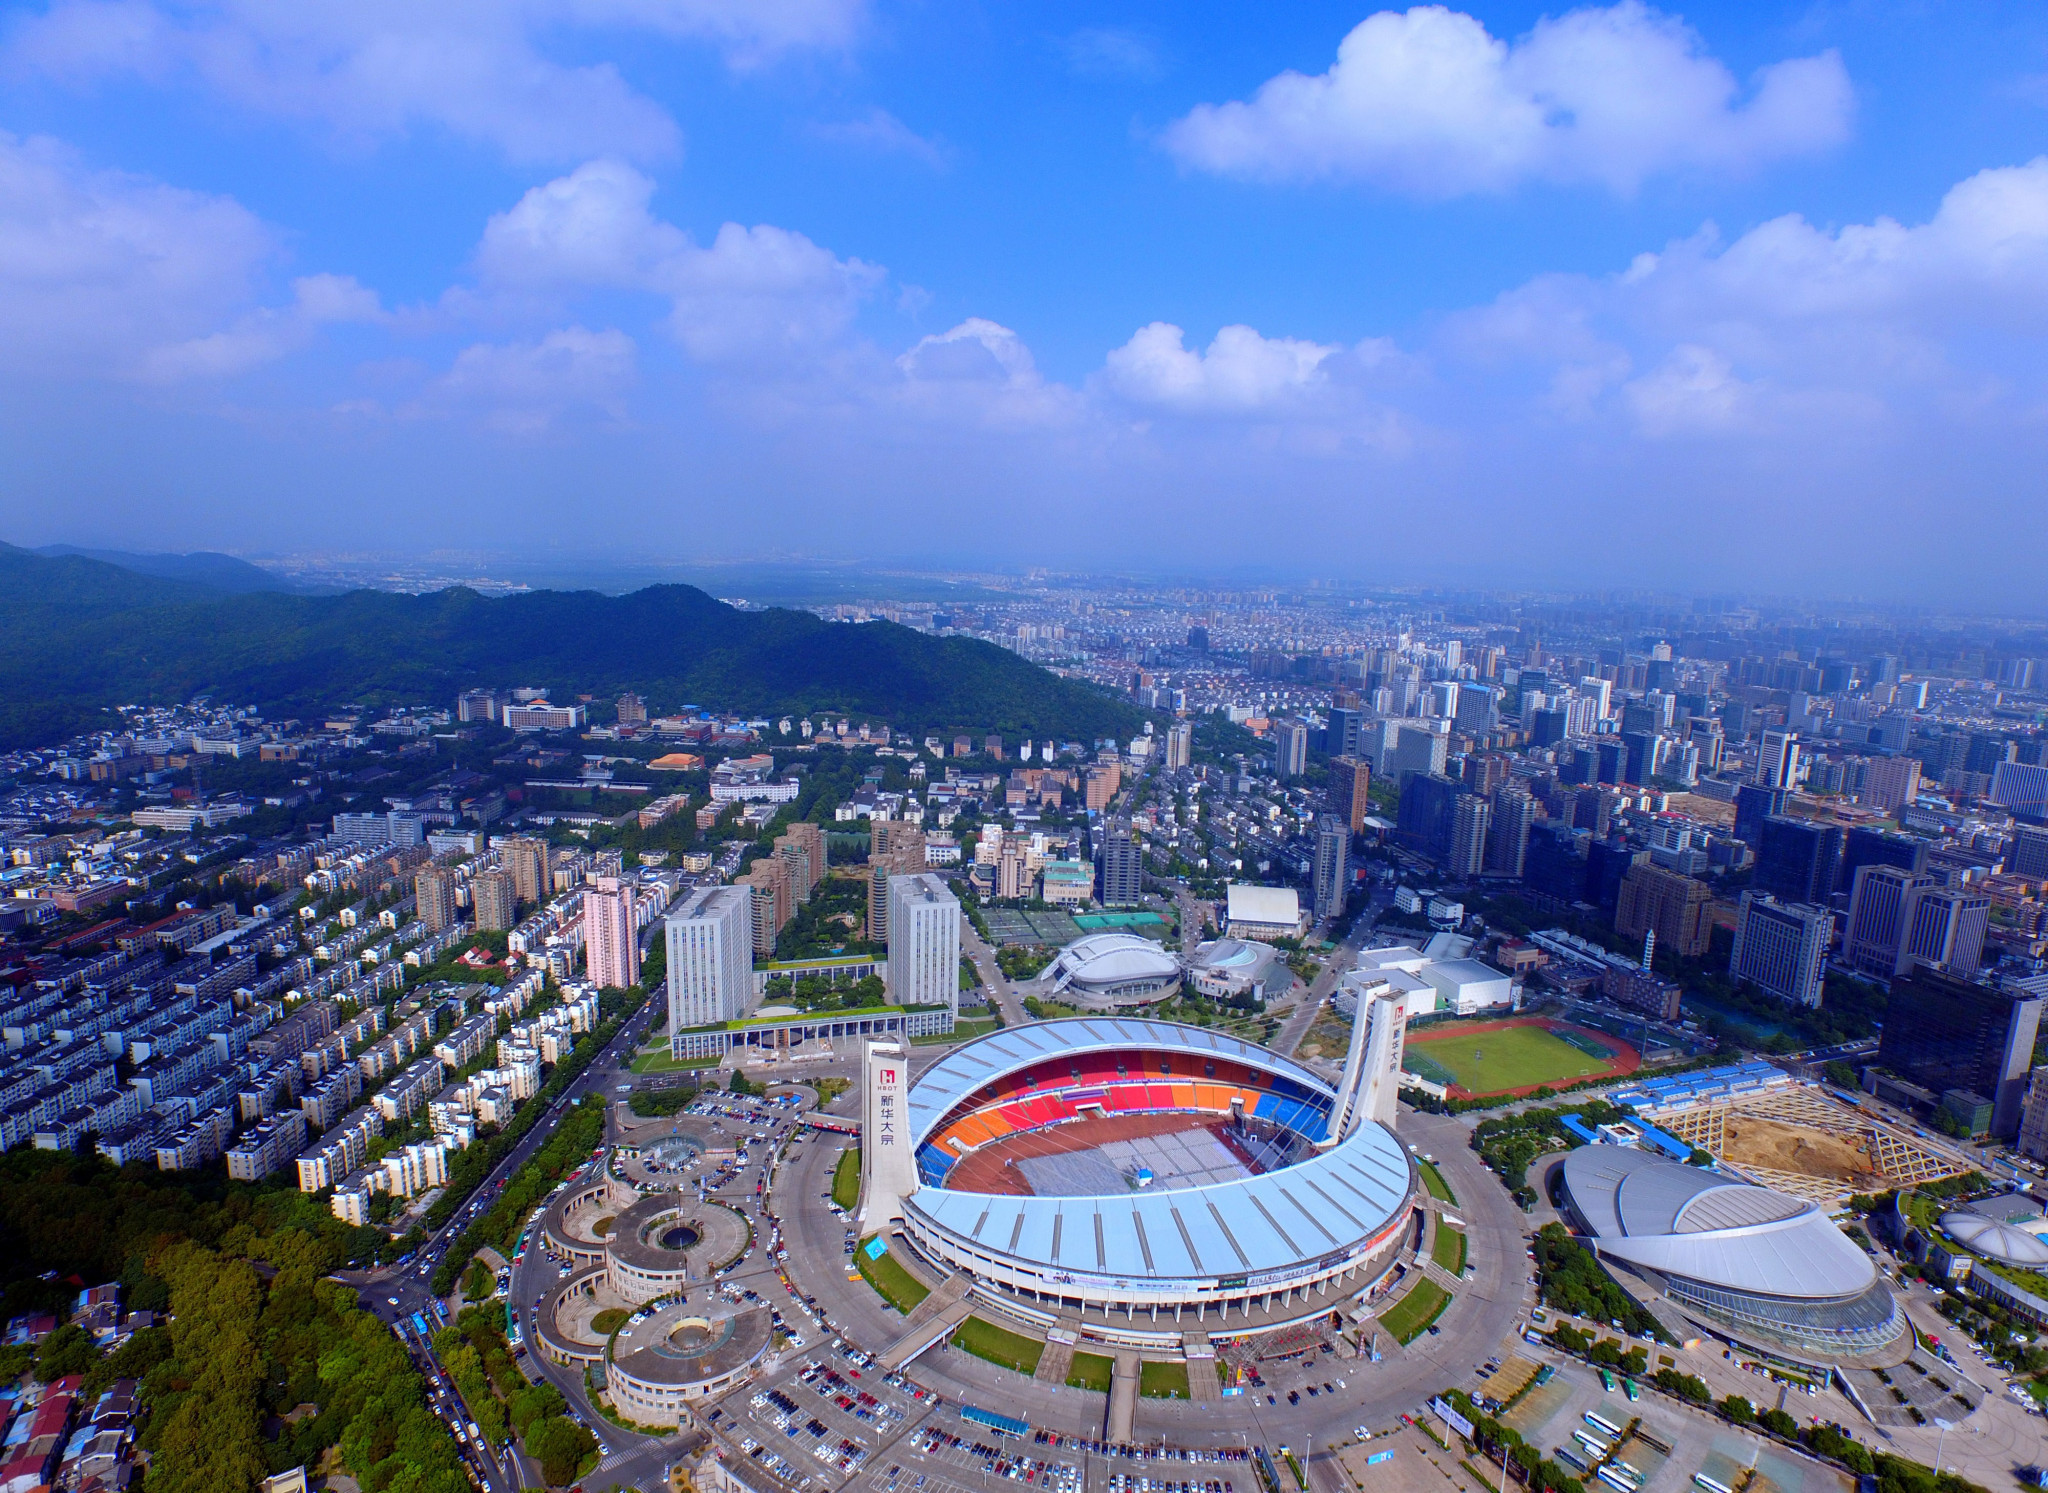 Hangzhou 2022 to release COVID-19 Prevention and Control Manual by end of year